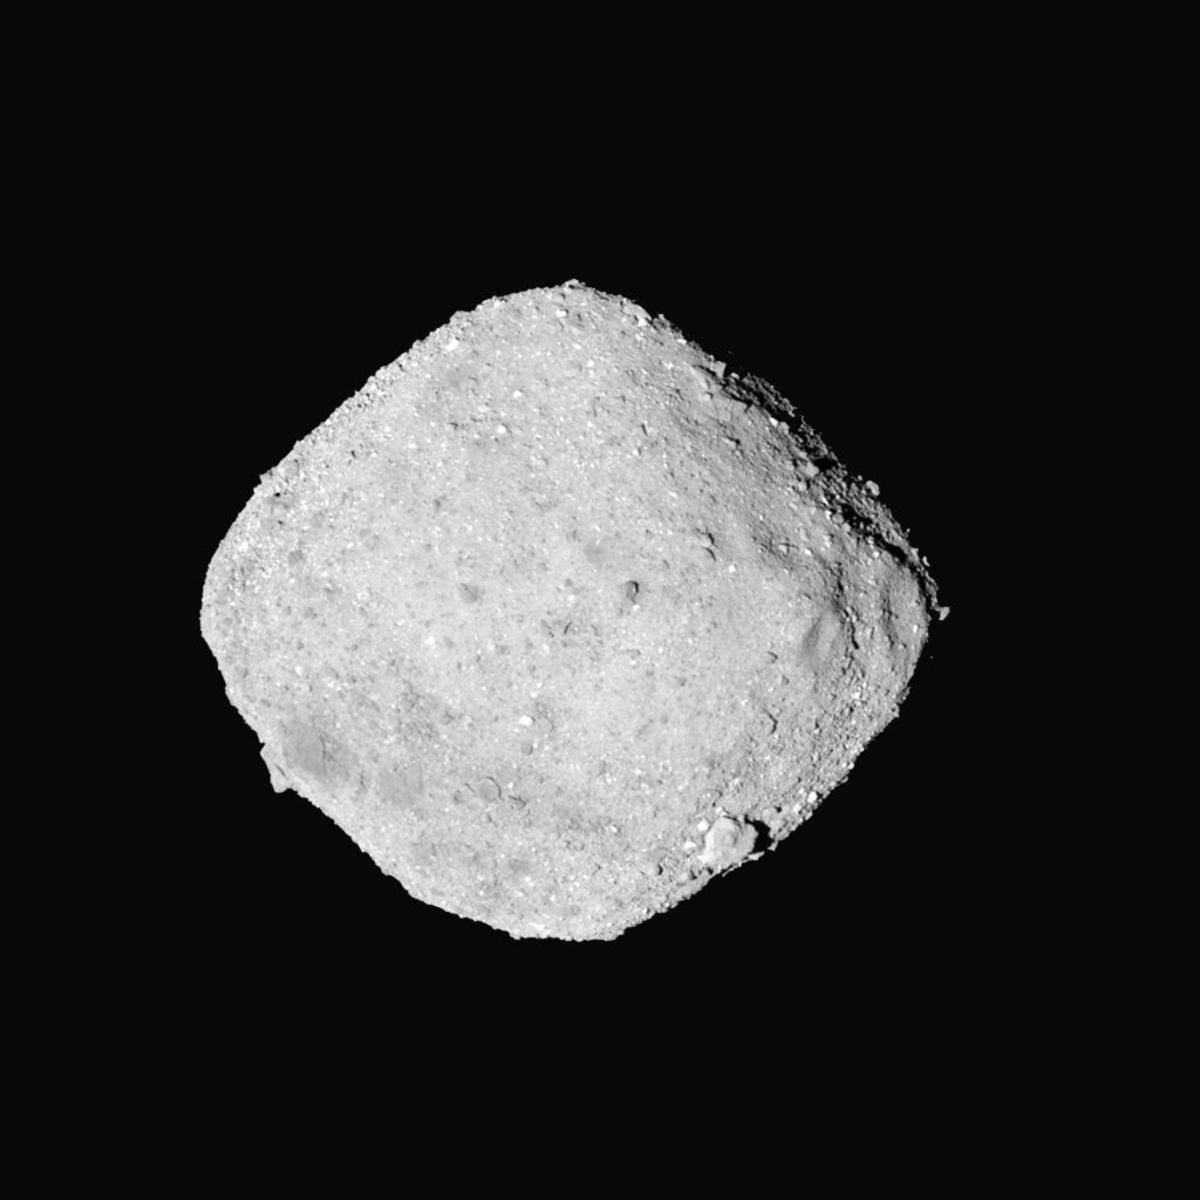 Rex Mission Arrives At Asteroid Bennu After 2 Years